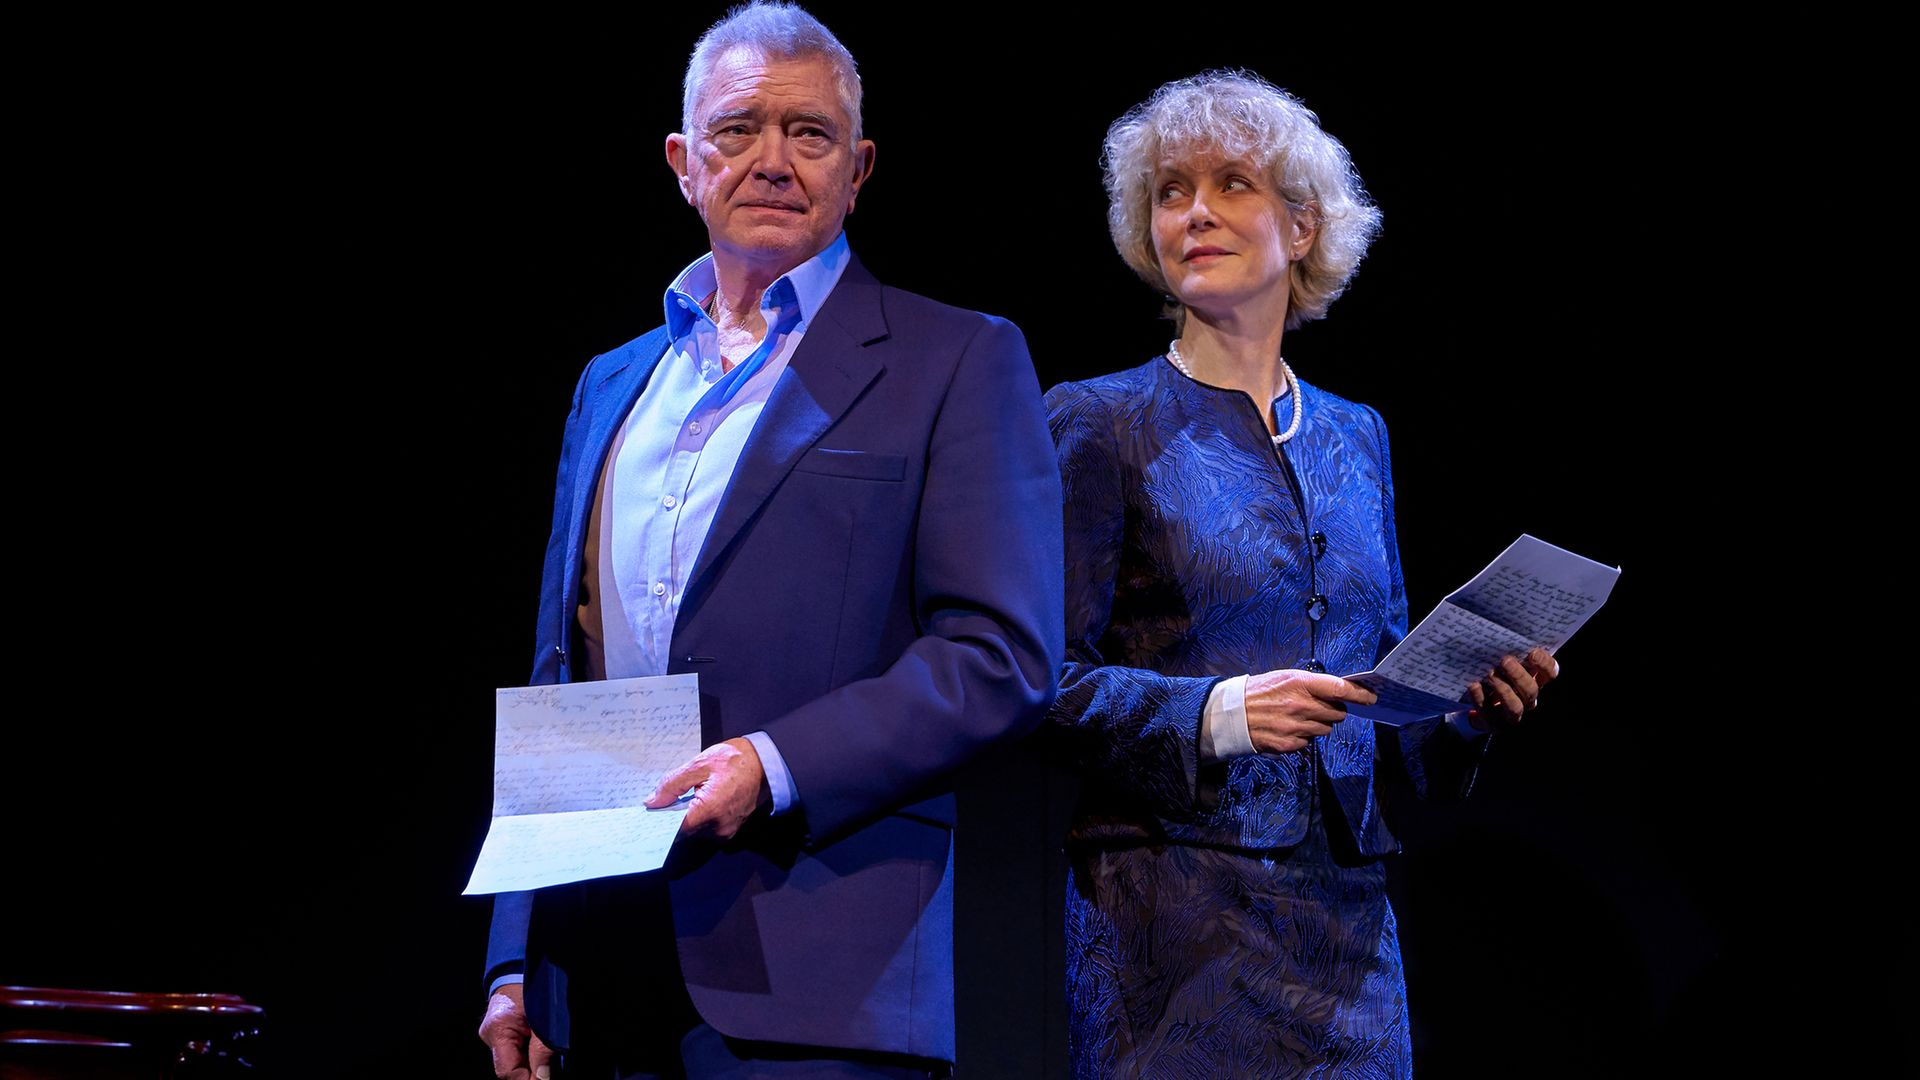 Martin Shaw and Jenny Seagrove in Love Letters at the Theatre Royal Haymarket - Credit: PAUL COLTAS